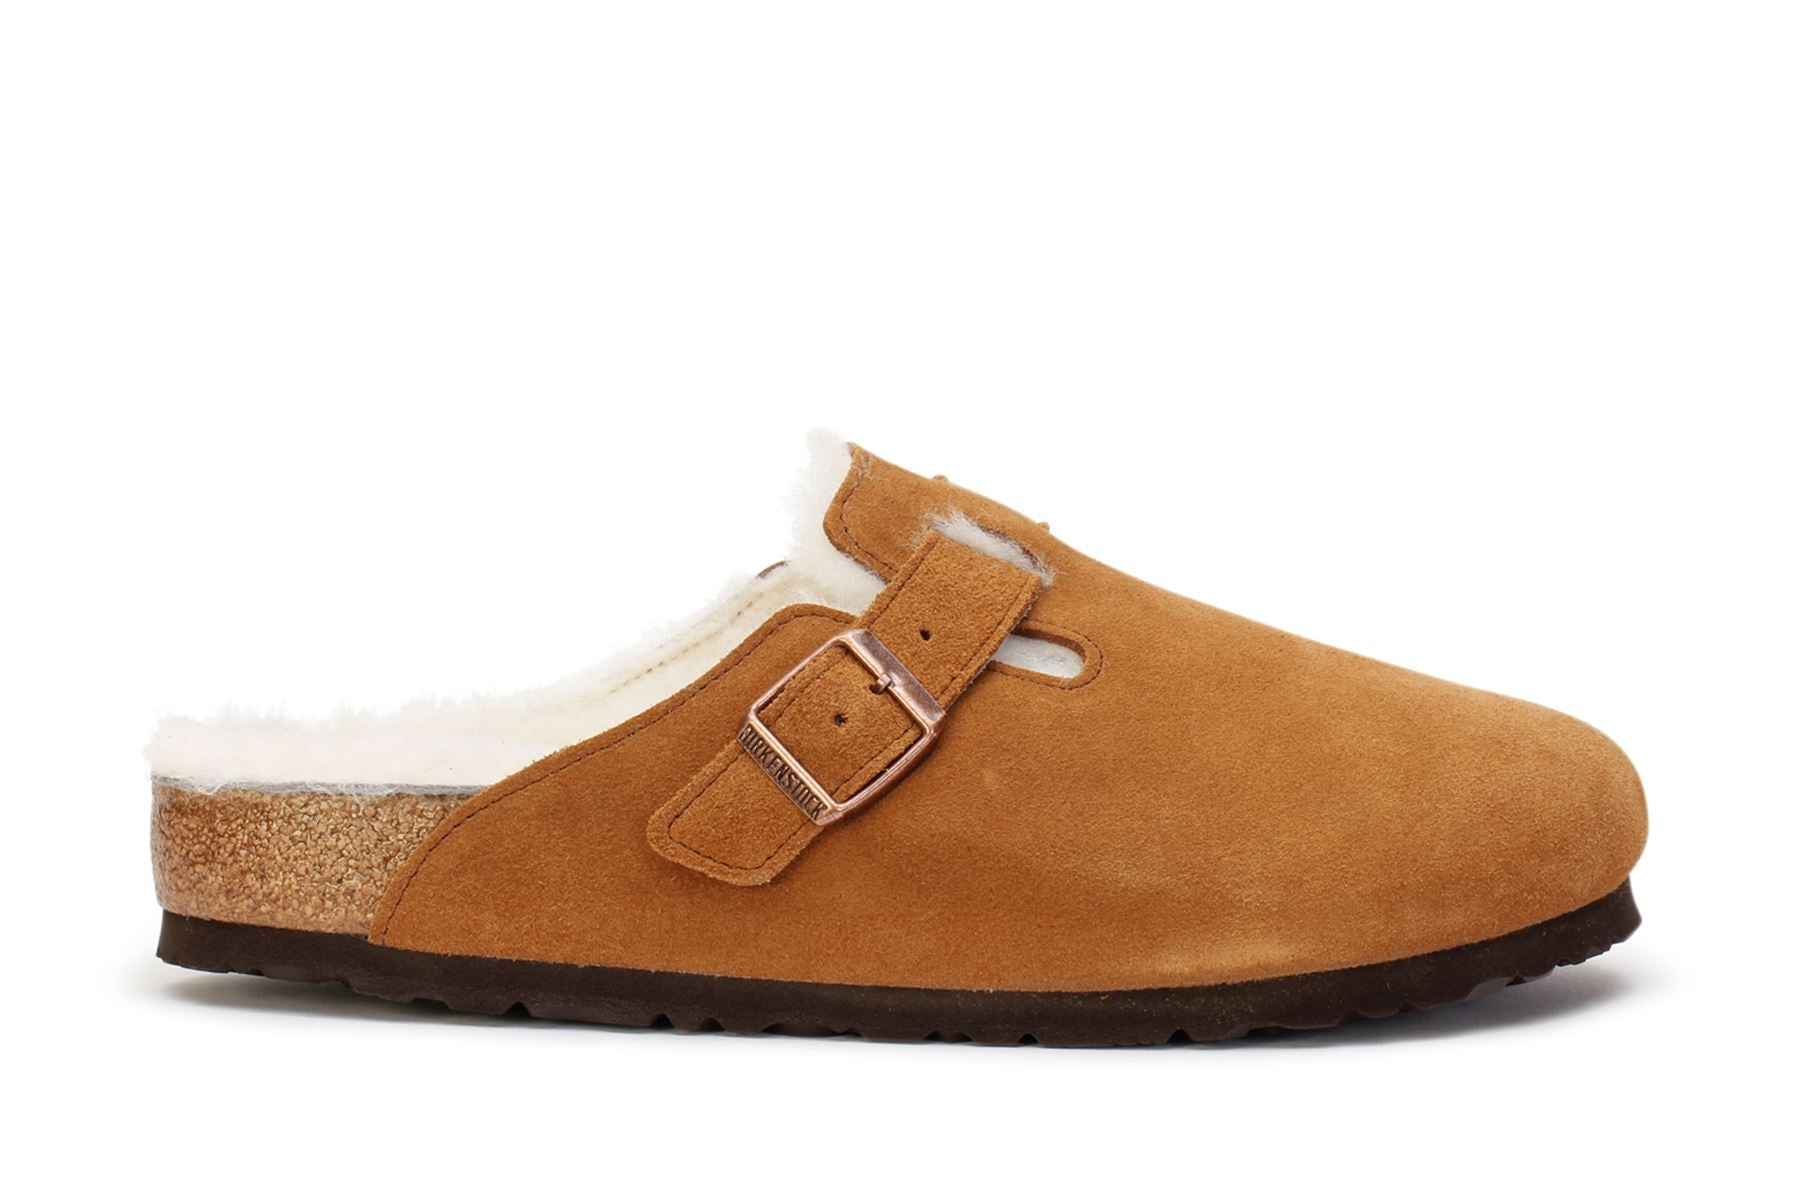 Birkenstock Boston Fur Clog Suede Leather